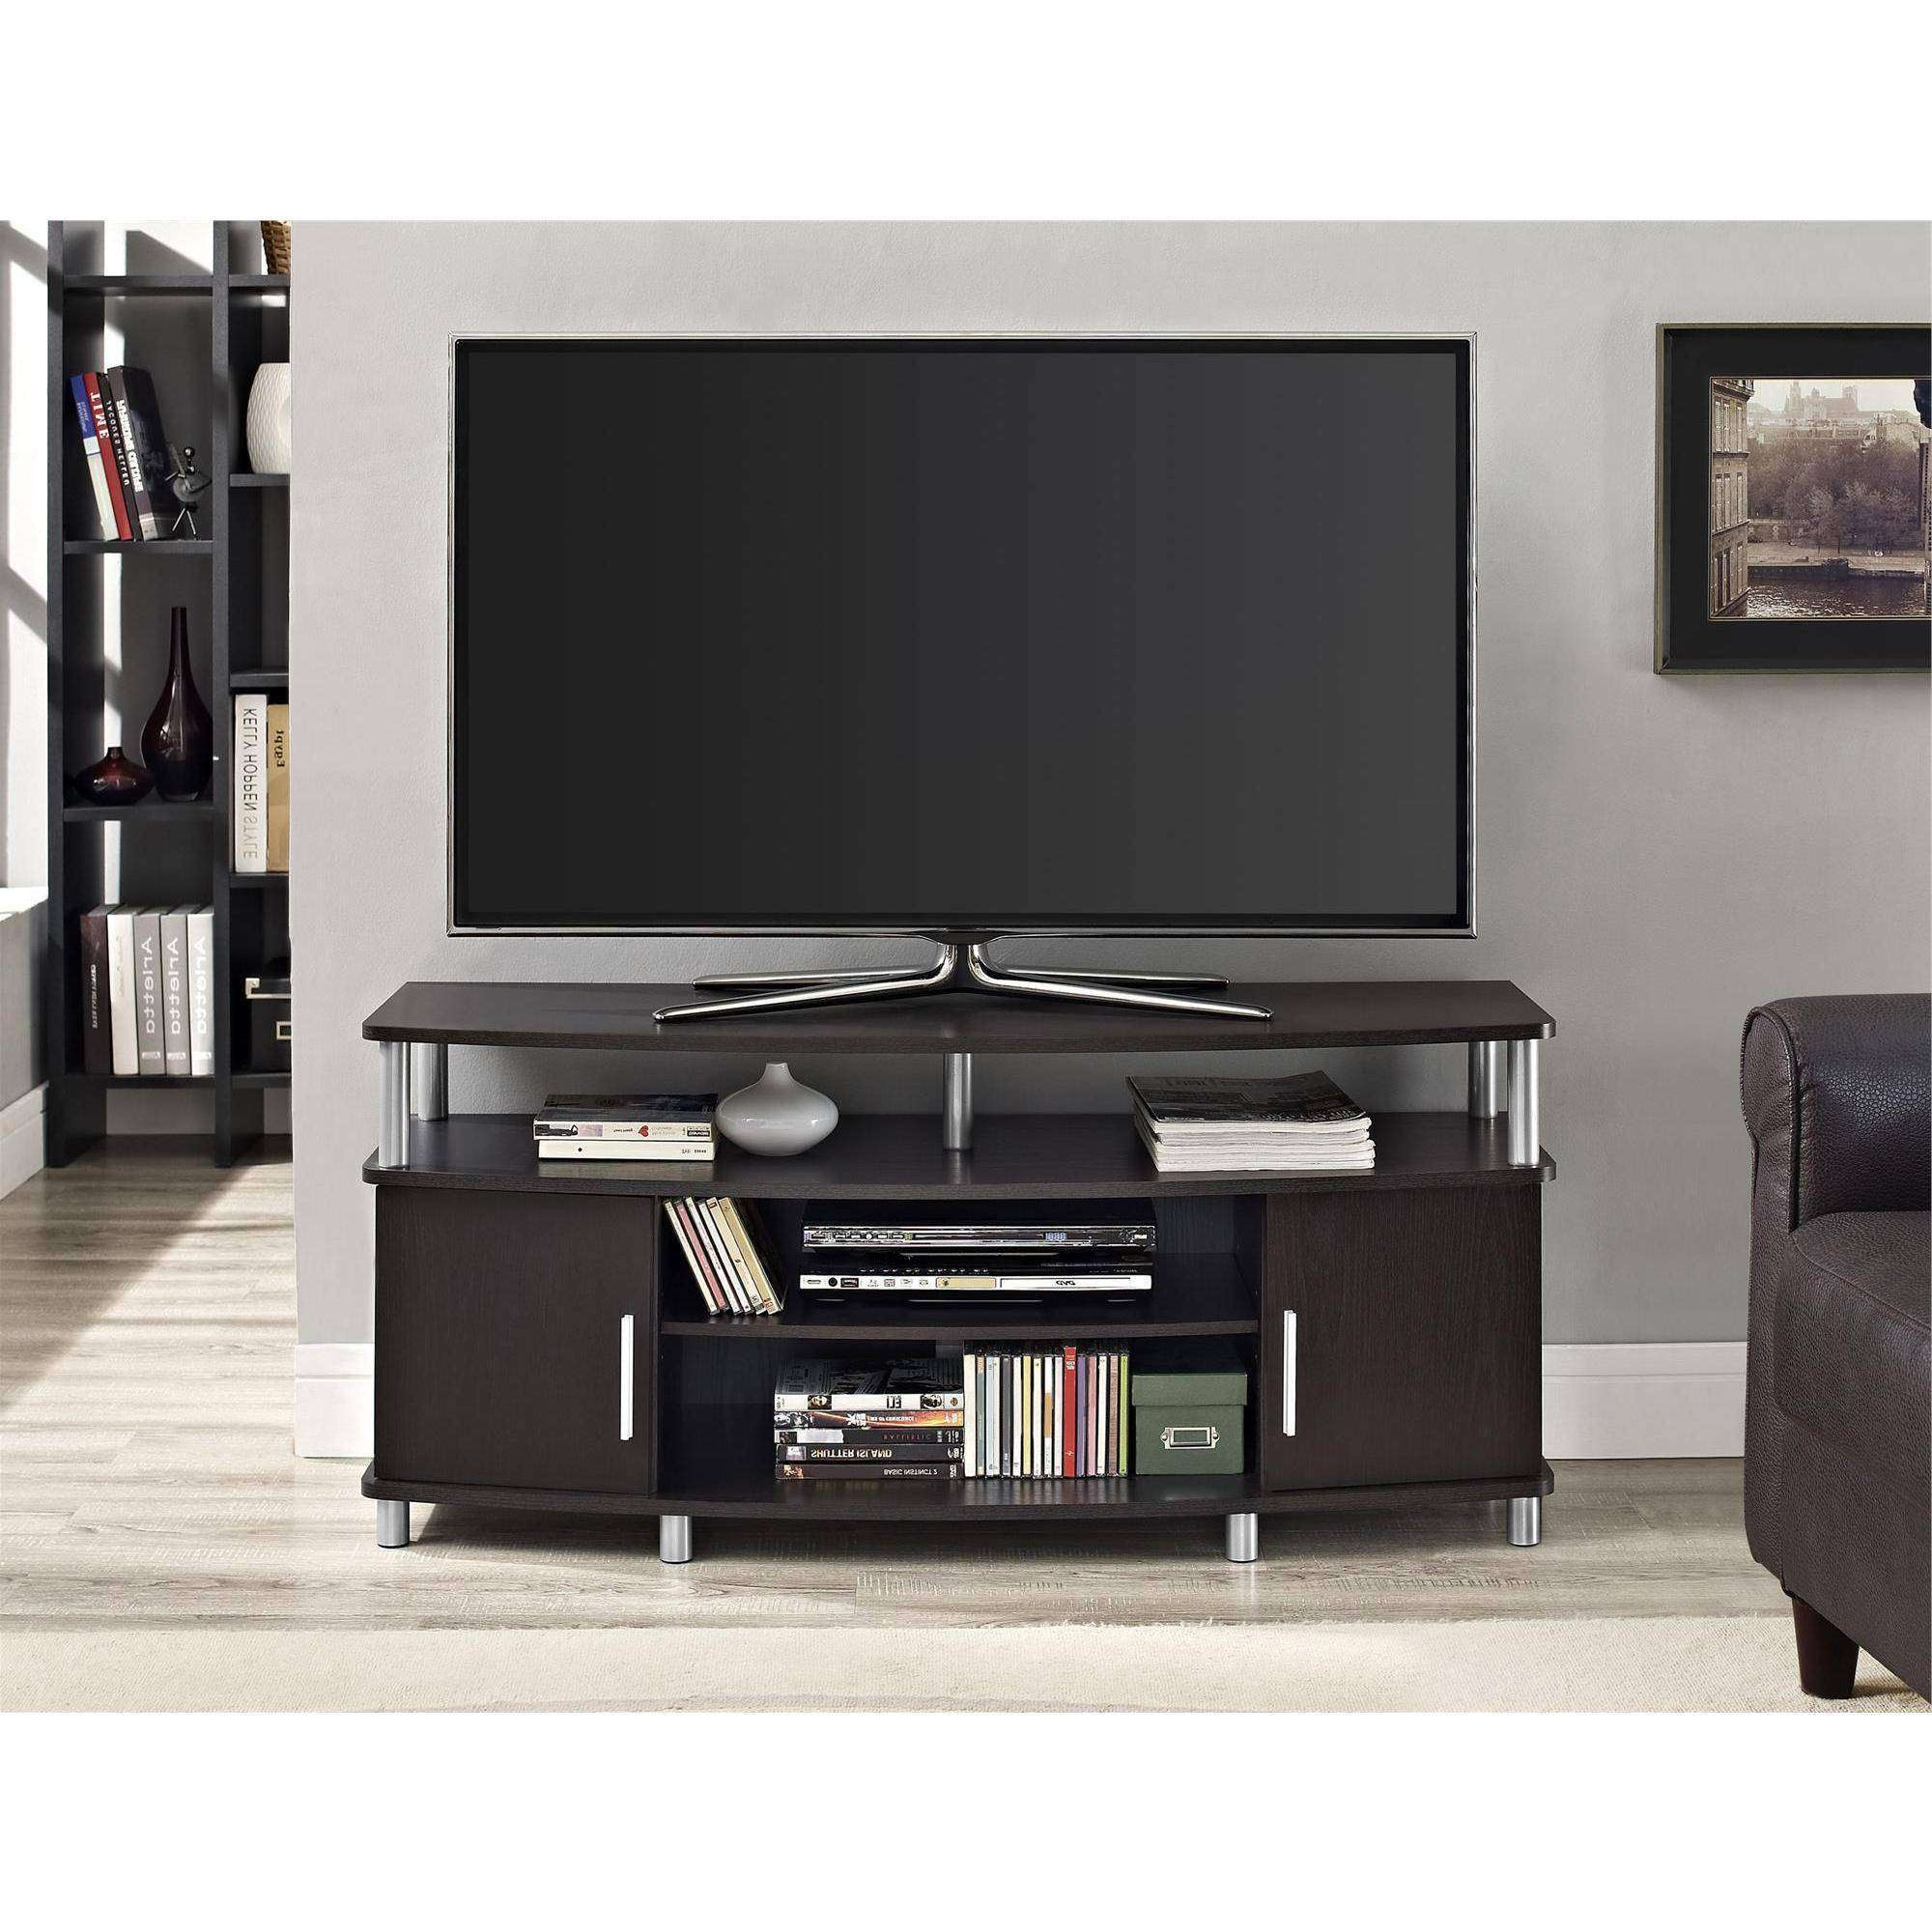 "Carson 3 Piece Entertainment Center For Tvs Up To 50"", Multiple With Regard To Tv Stands For 50 Inch Tvs (View 13 of 15)"